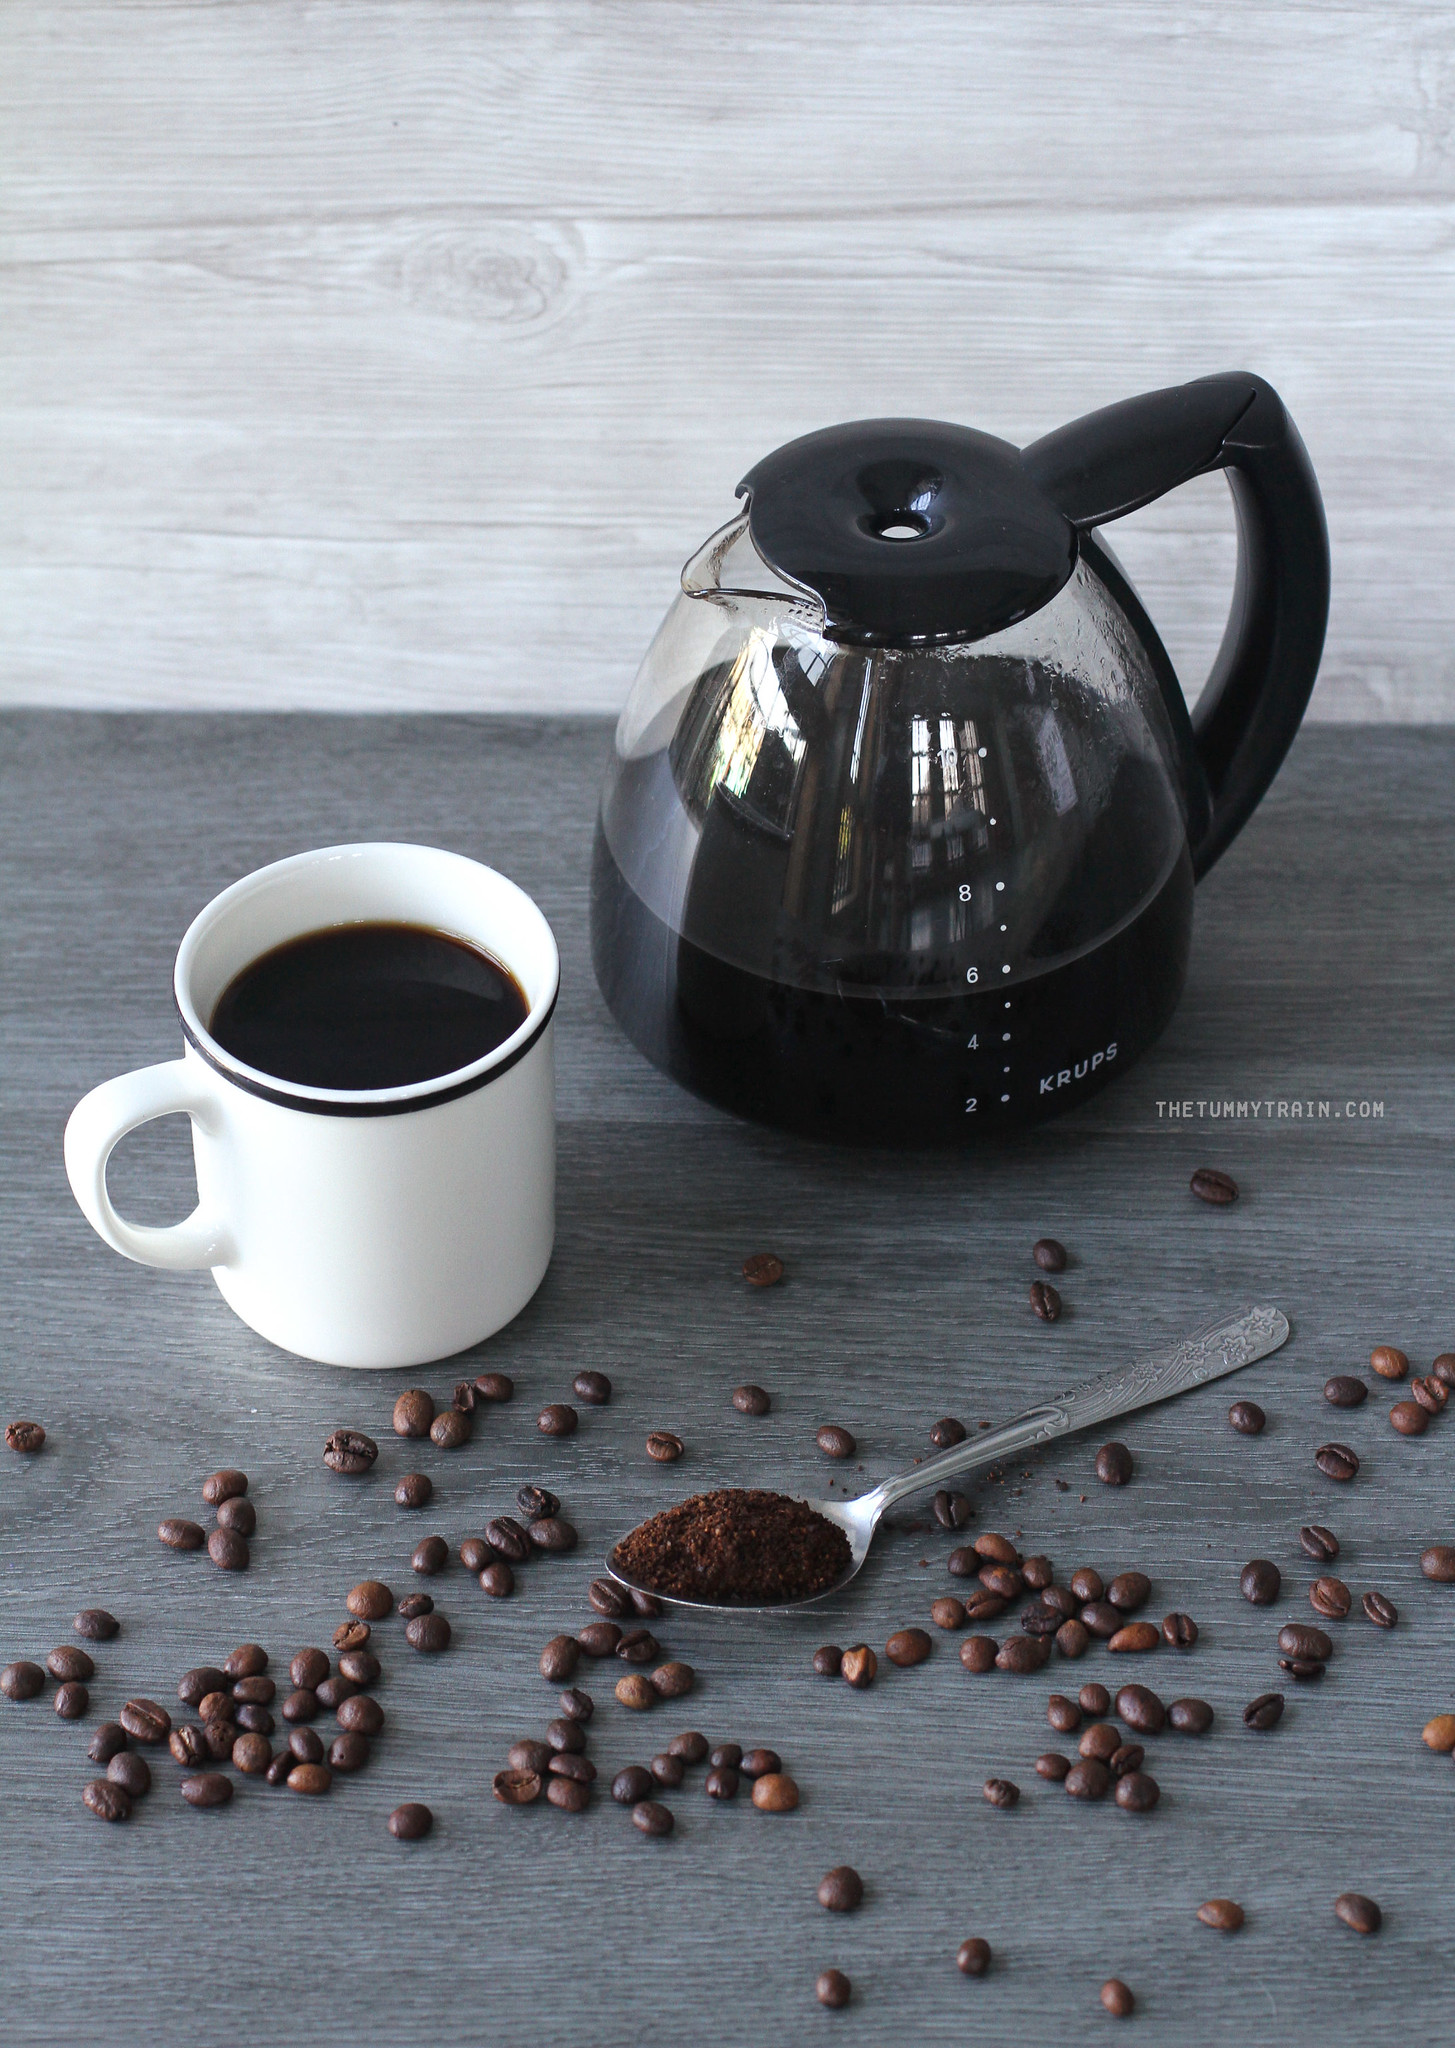 32868424753 0464b417d5 k - Figures of Beans brings coffee from Cordillera straight to your door